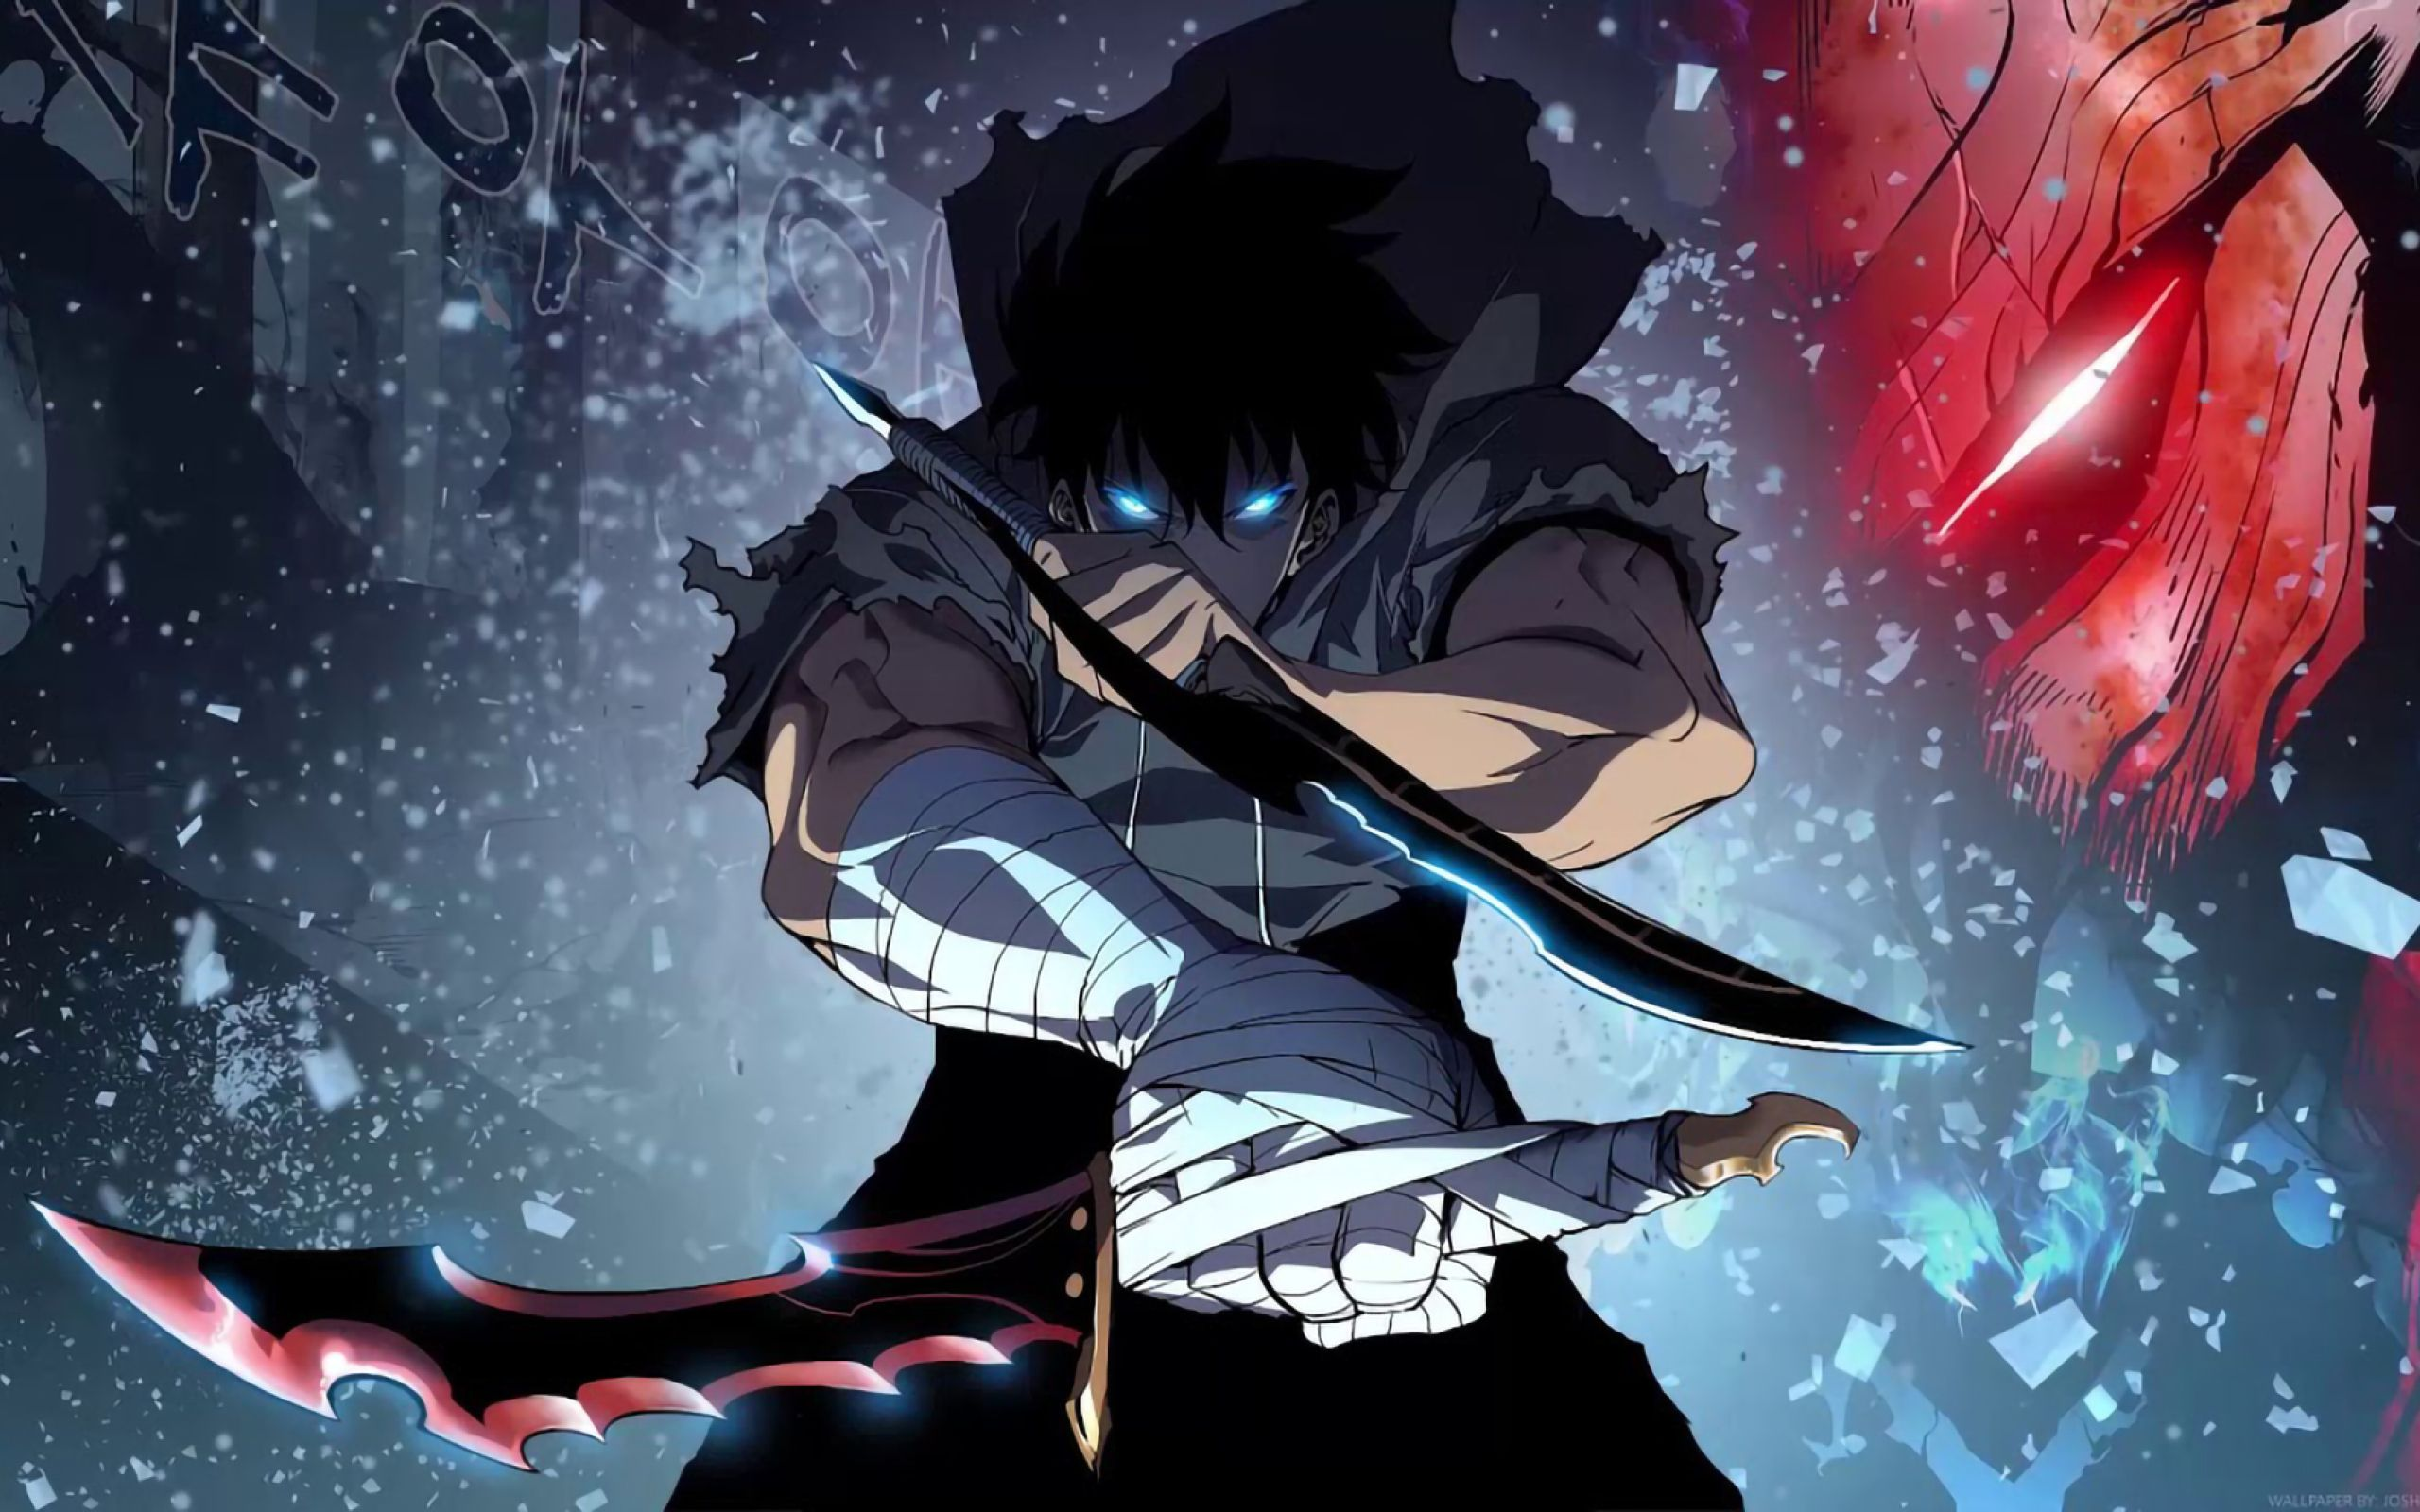 Anime 15x15 Wallpapers   Top Free Anime 15x15 Backgrounds ...